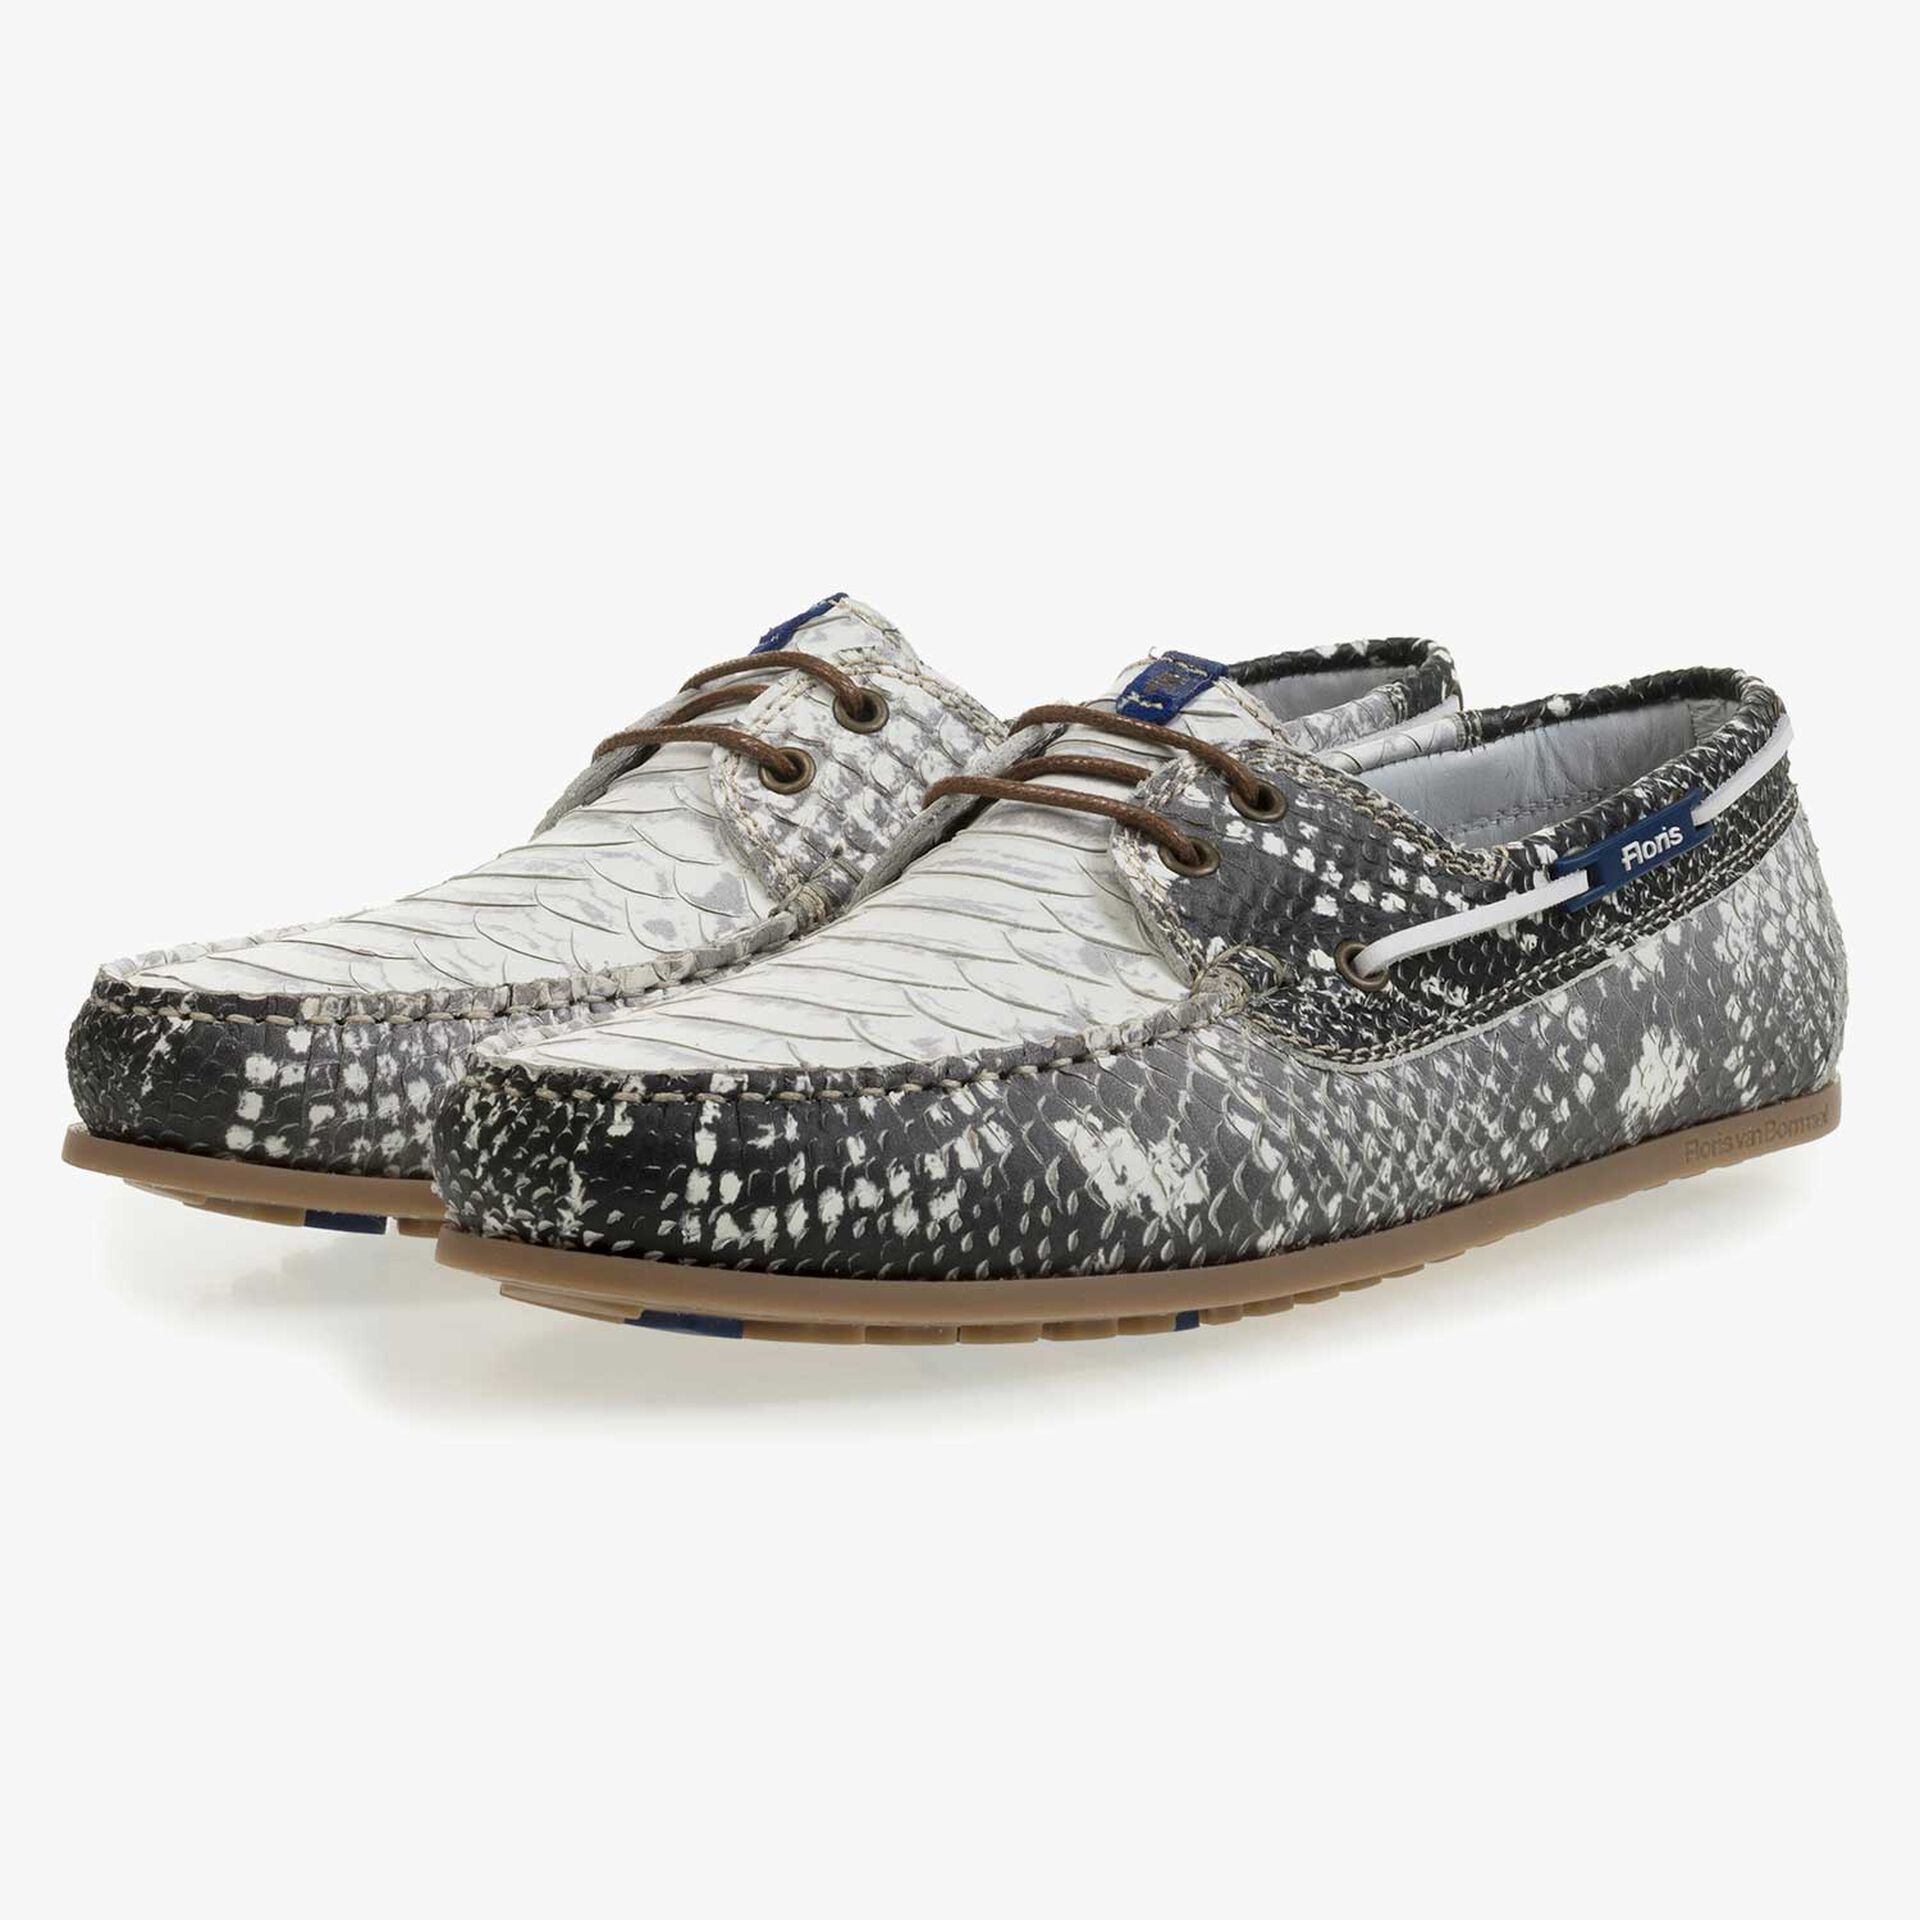 Grey leather boat shoe with snake print